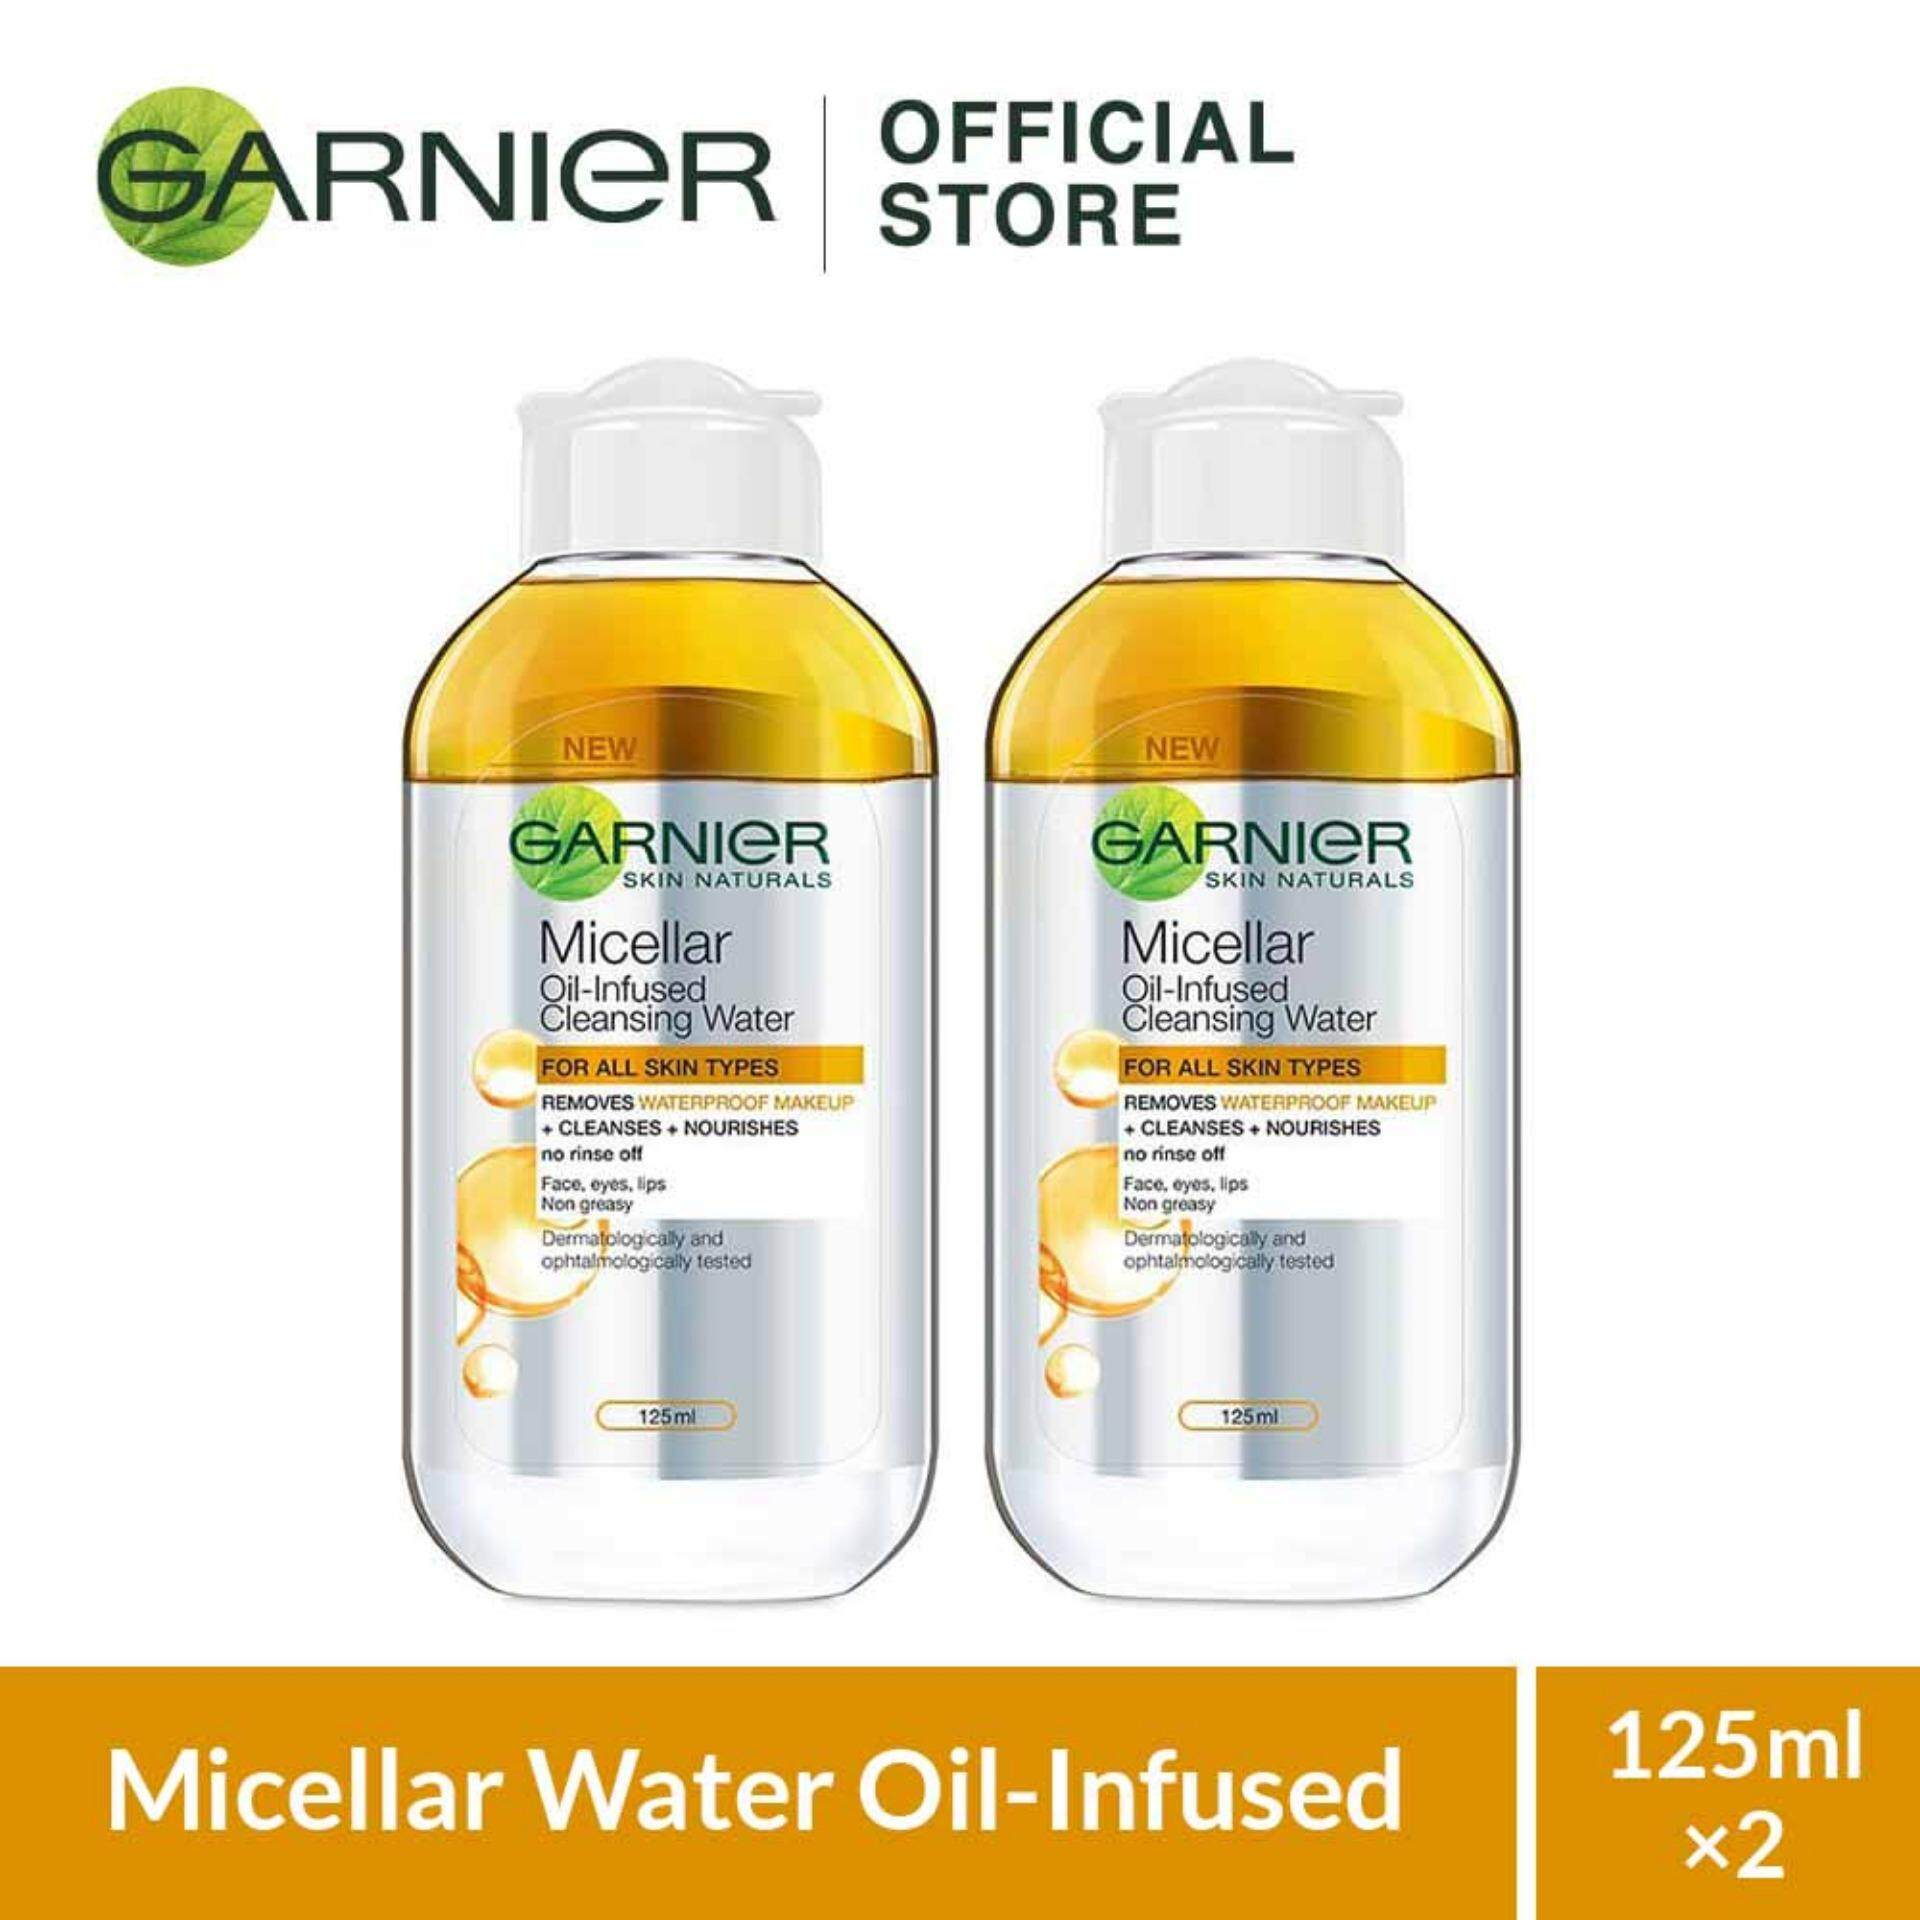 Garnier Micellar Cleansing Water 125ml Health Beauty Makeup Removers Price In Malaysia Best Oil Infused Bundle X 2